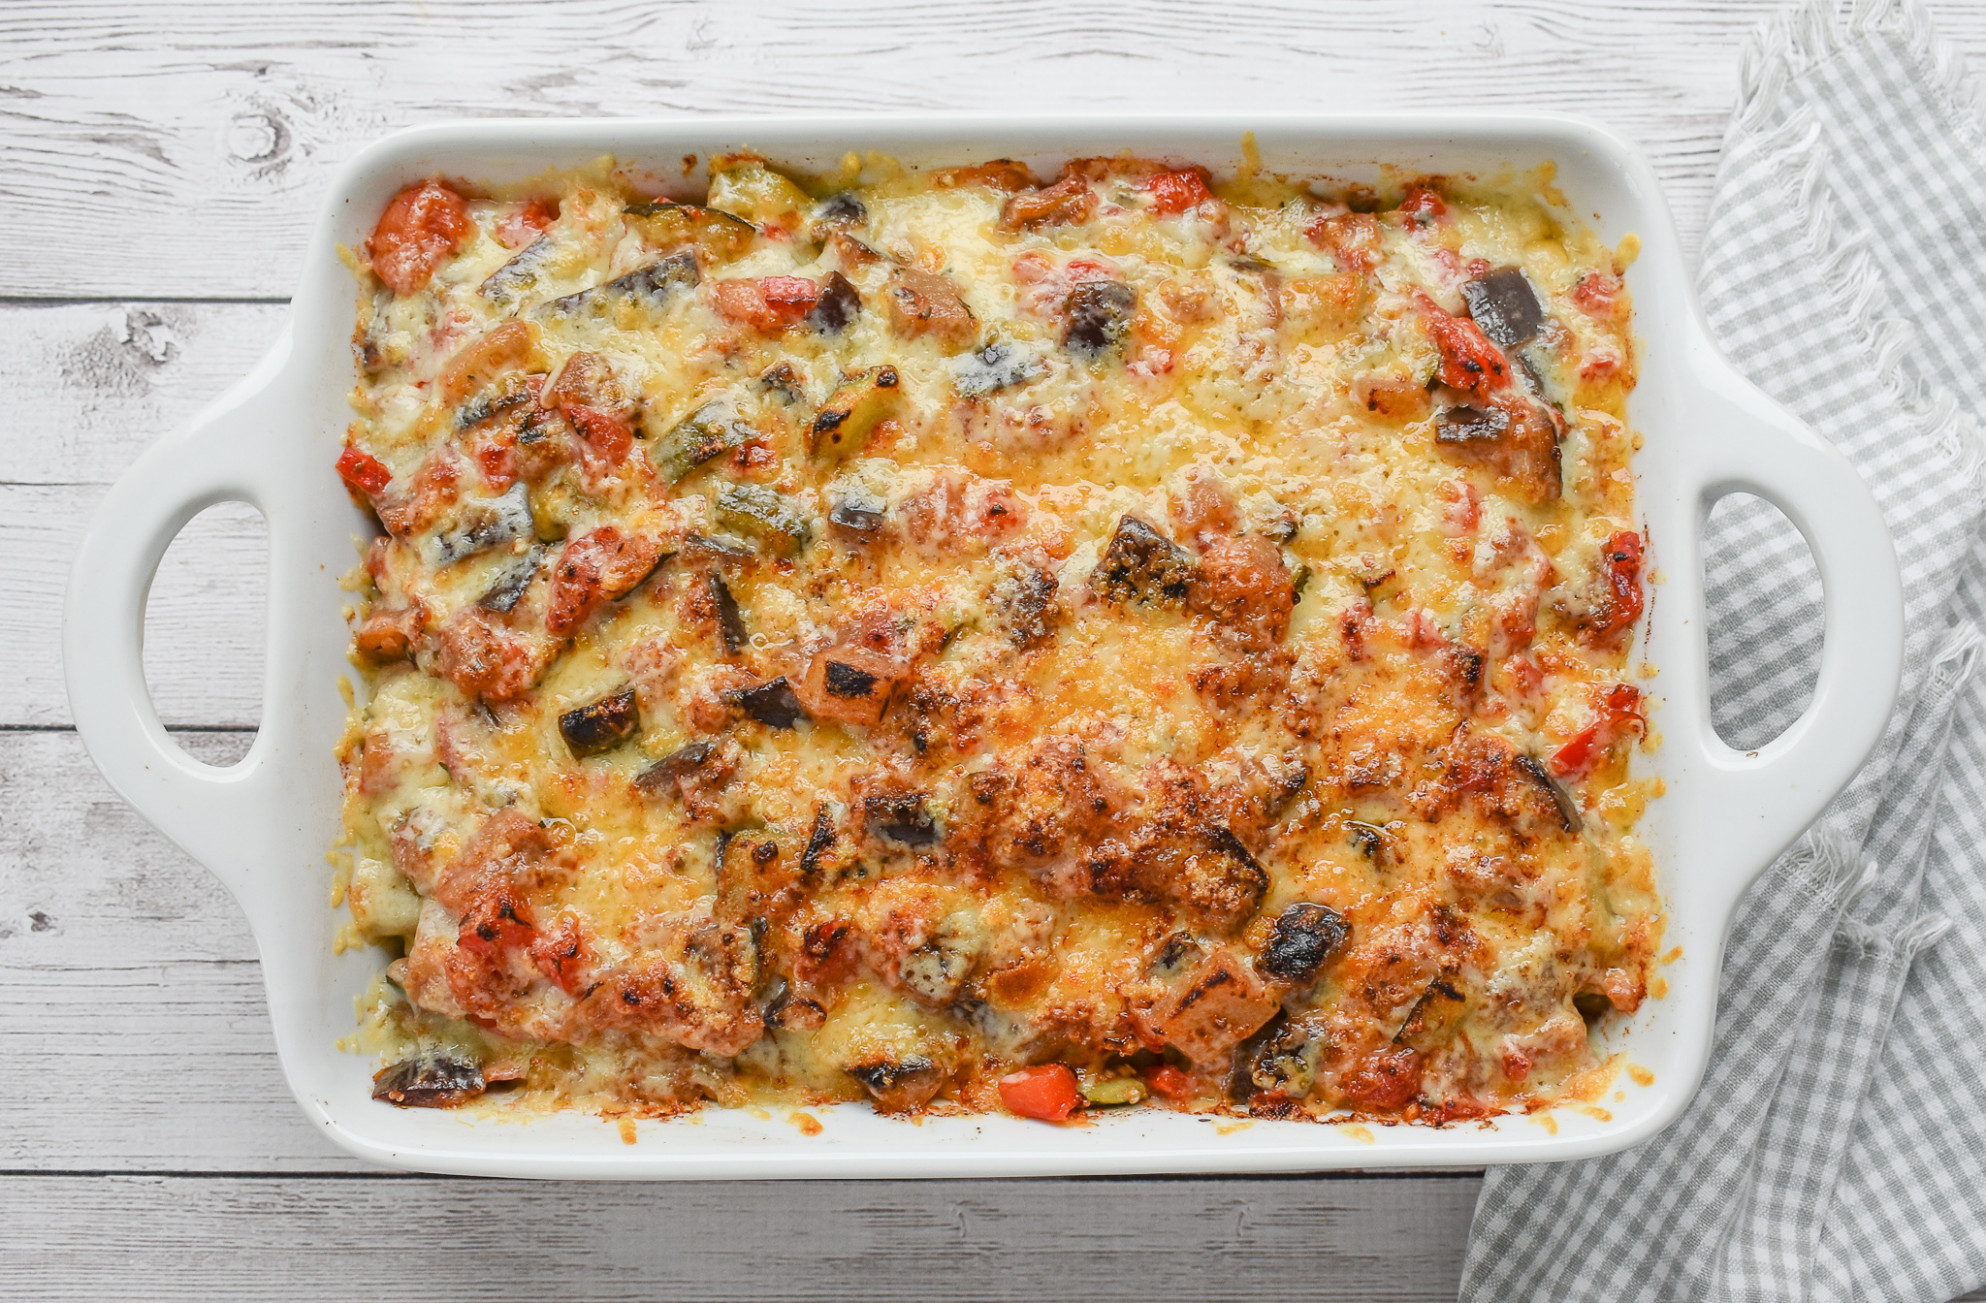 Low-FODMAP Ratatouille Garlic Bread Casserole, Gluten-free - recipes casseroles vegetarian